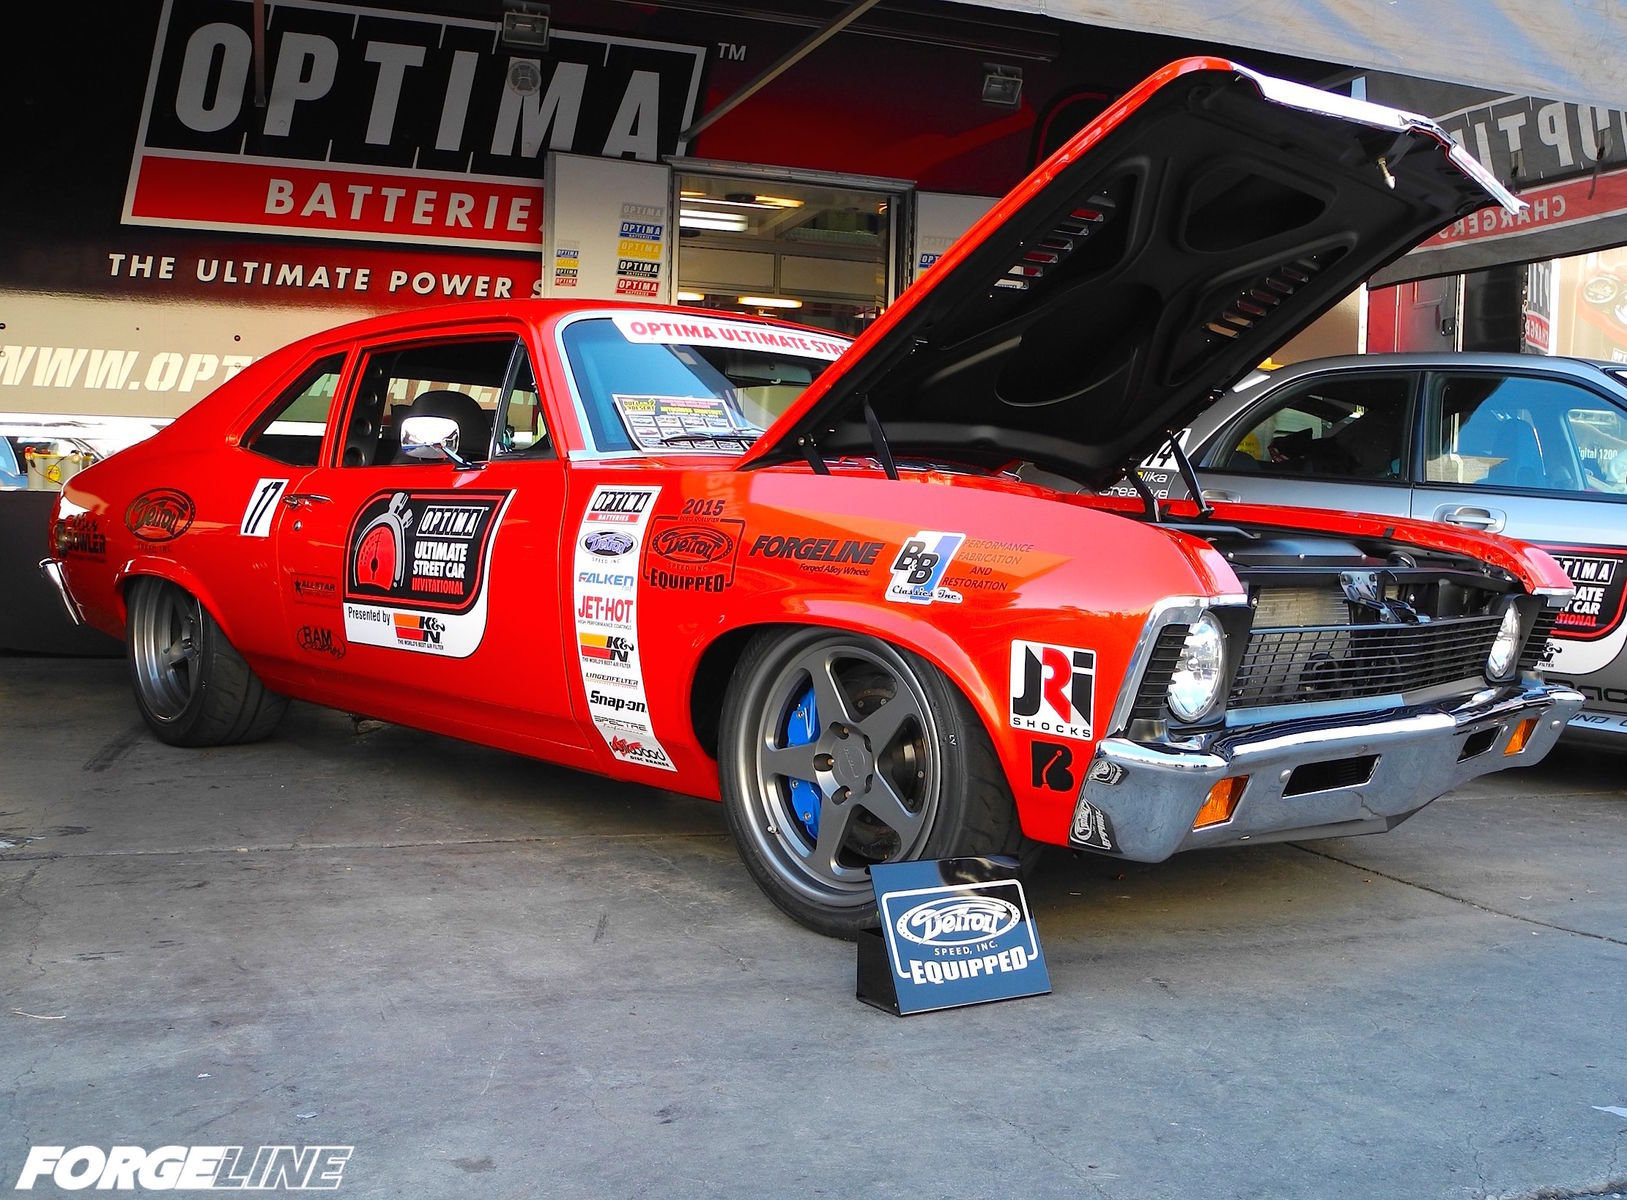 1972 Chevrolet Nova | Billy Utley's B&B Classics Inc.-built '72 Nova on Forgeline FF3 Wheels